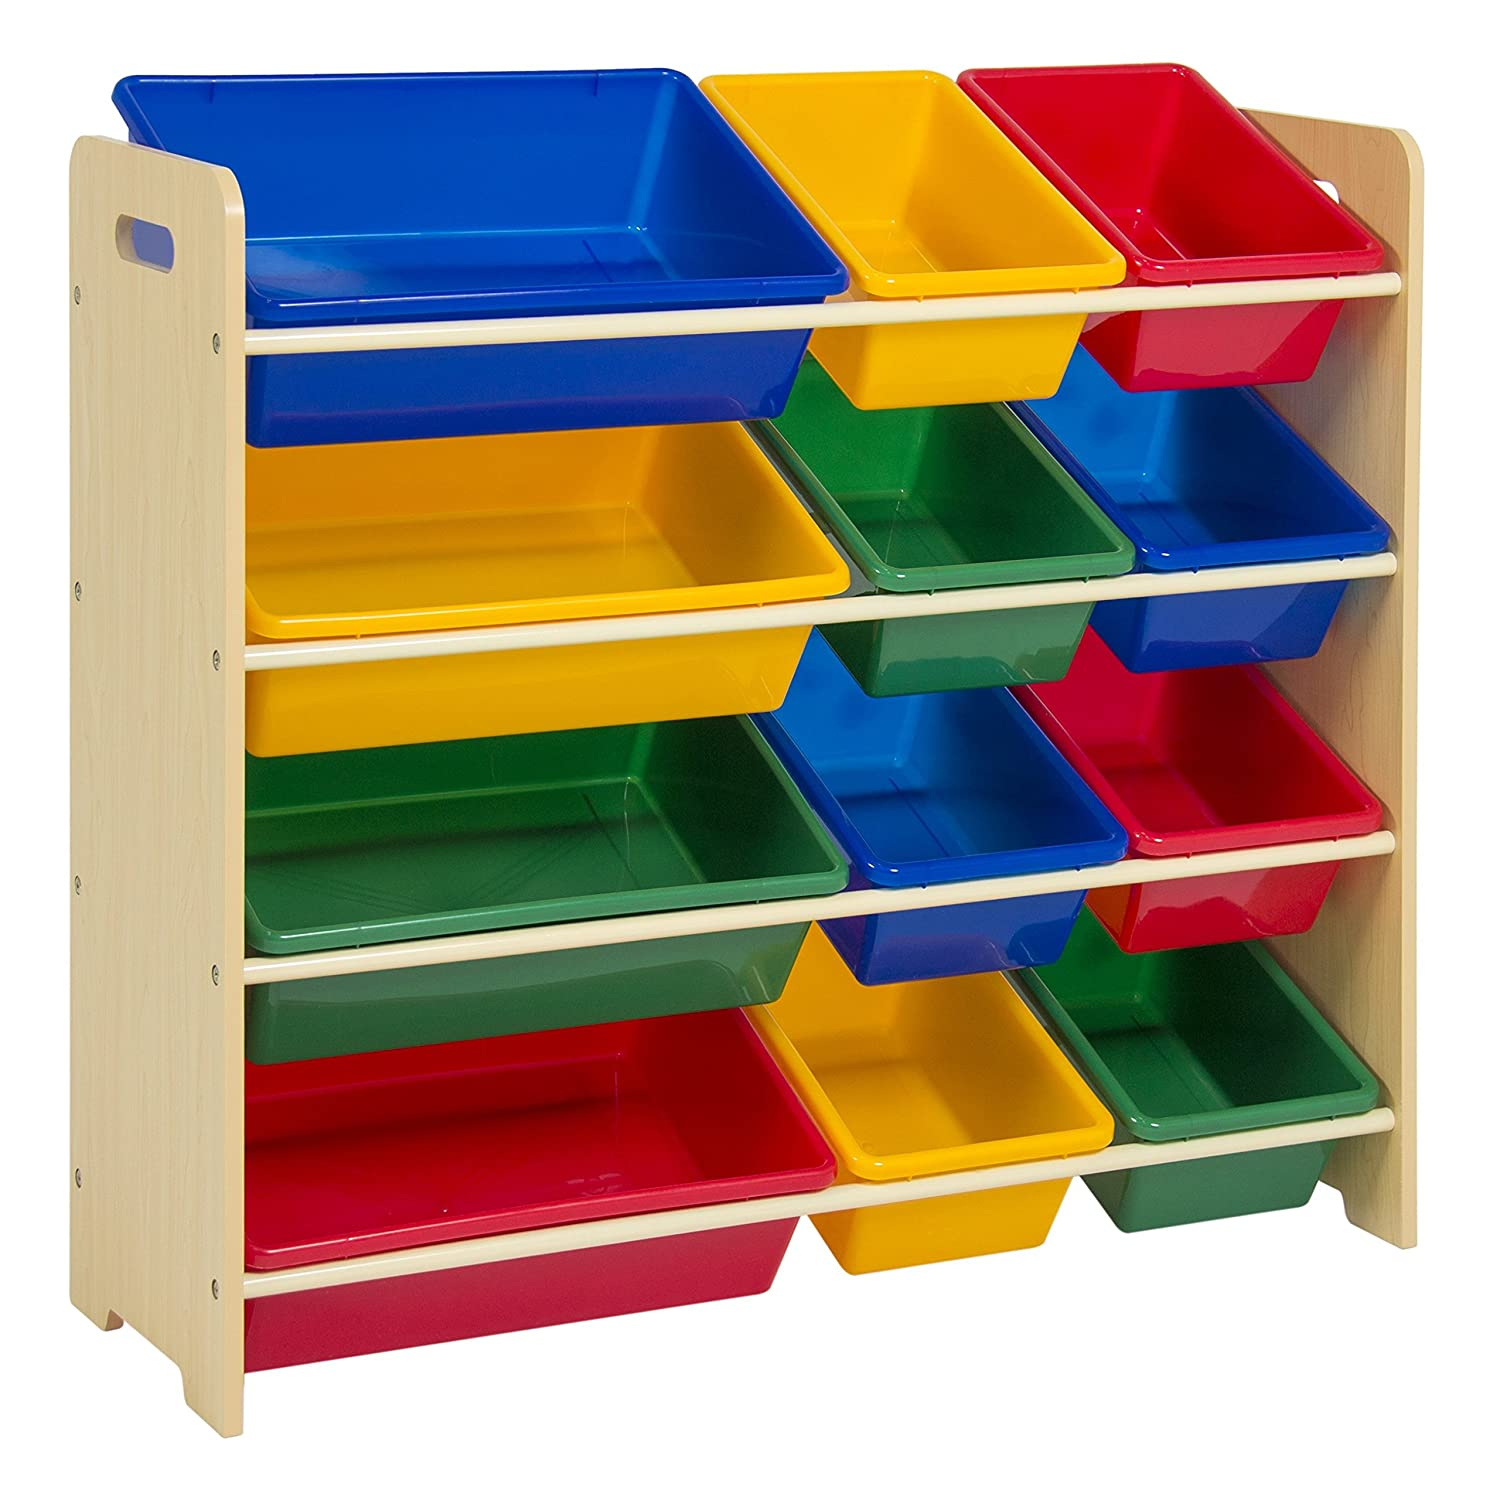 Charmant Amazon.com: Best Choice Products Toy Bin Organizer Kids Childrens Storage  Box Playroom Bedroom Shelf Drawer: Toys U0026 Games